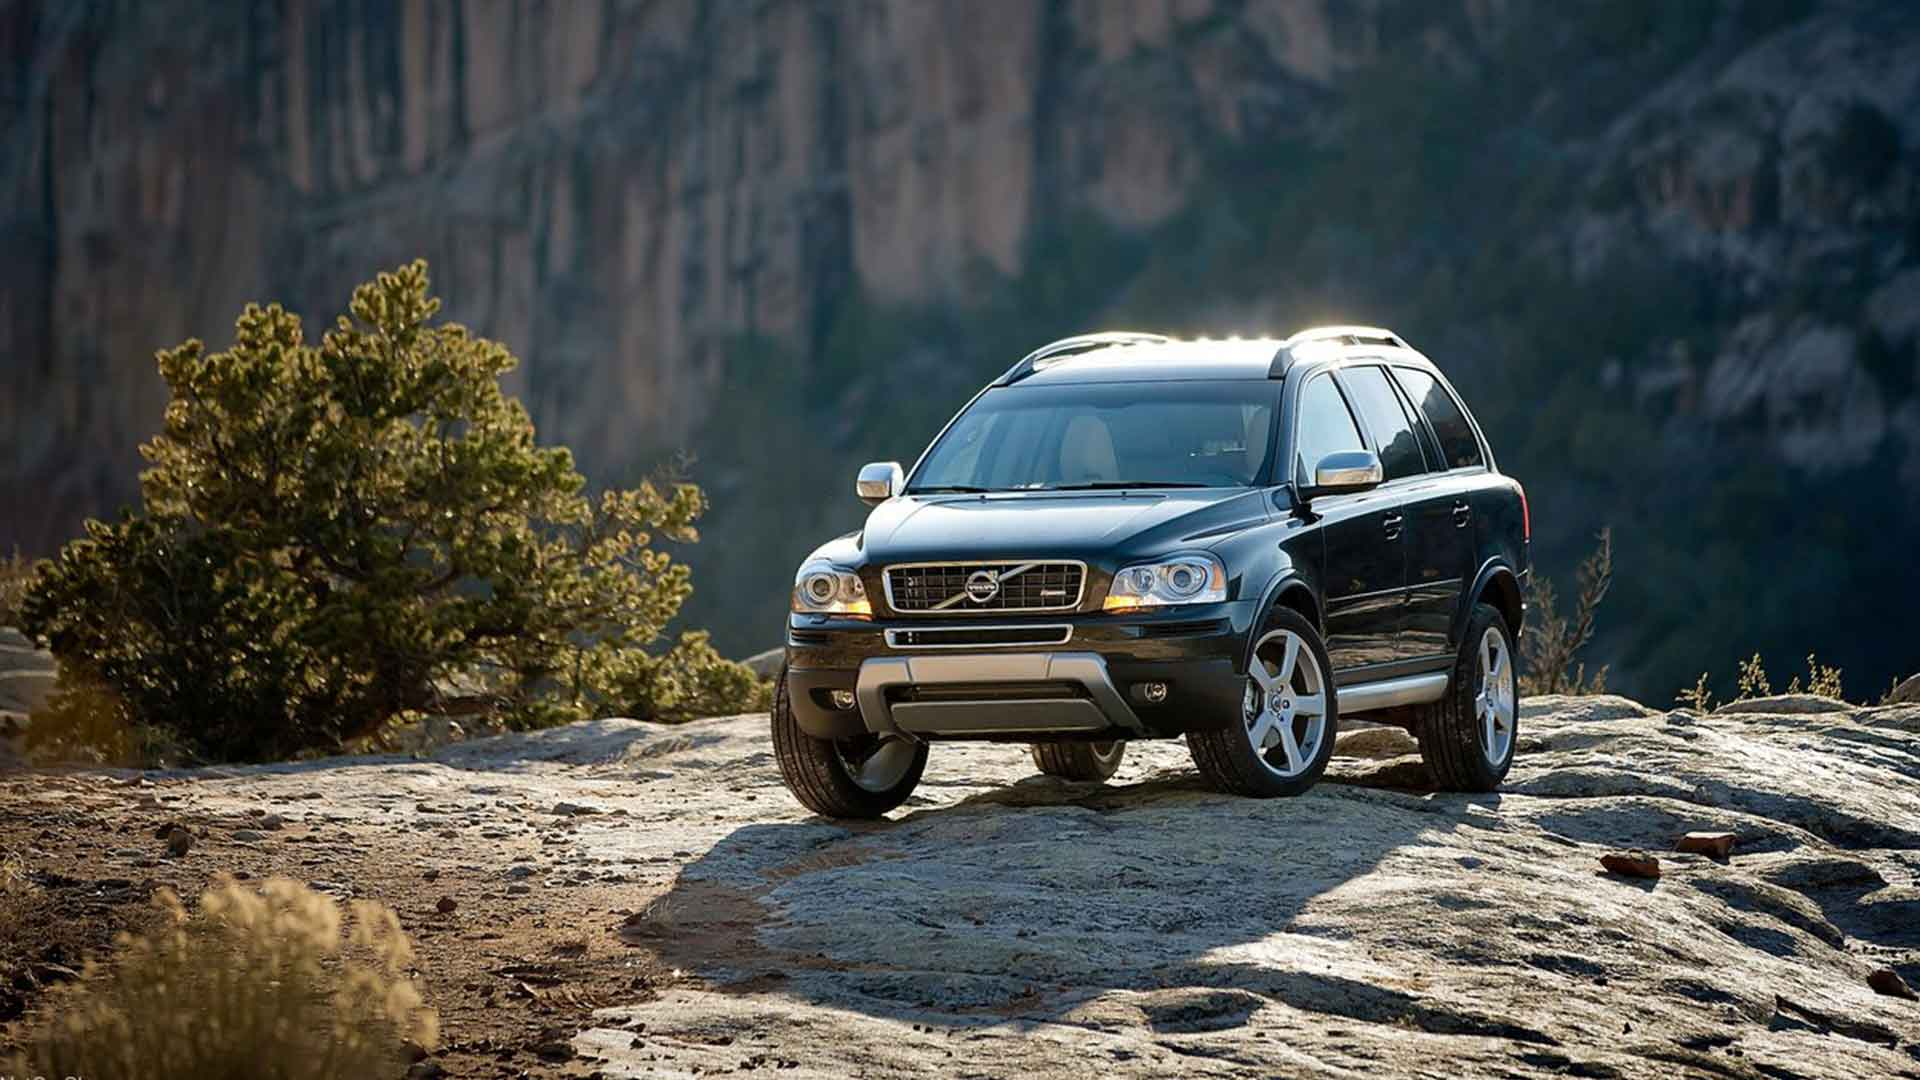 Location Volvo Xc90 Also 2001 Volvo S40 Wiring Diagram As Well Volvo